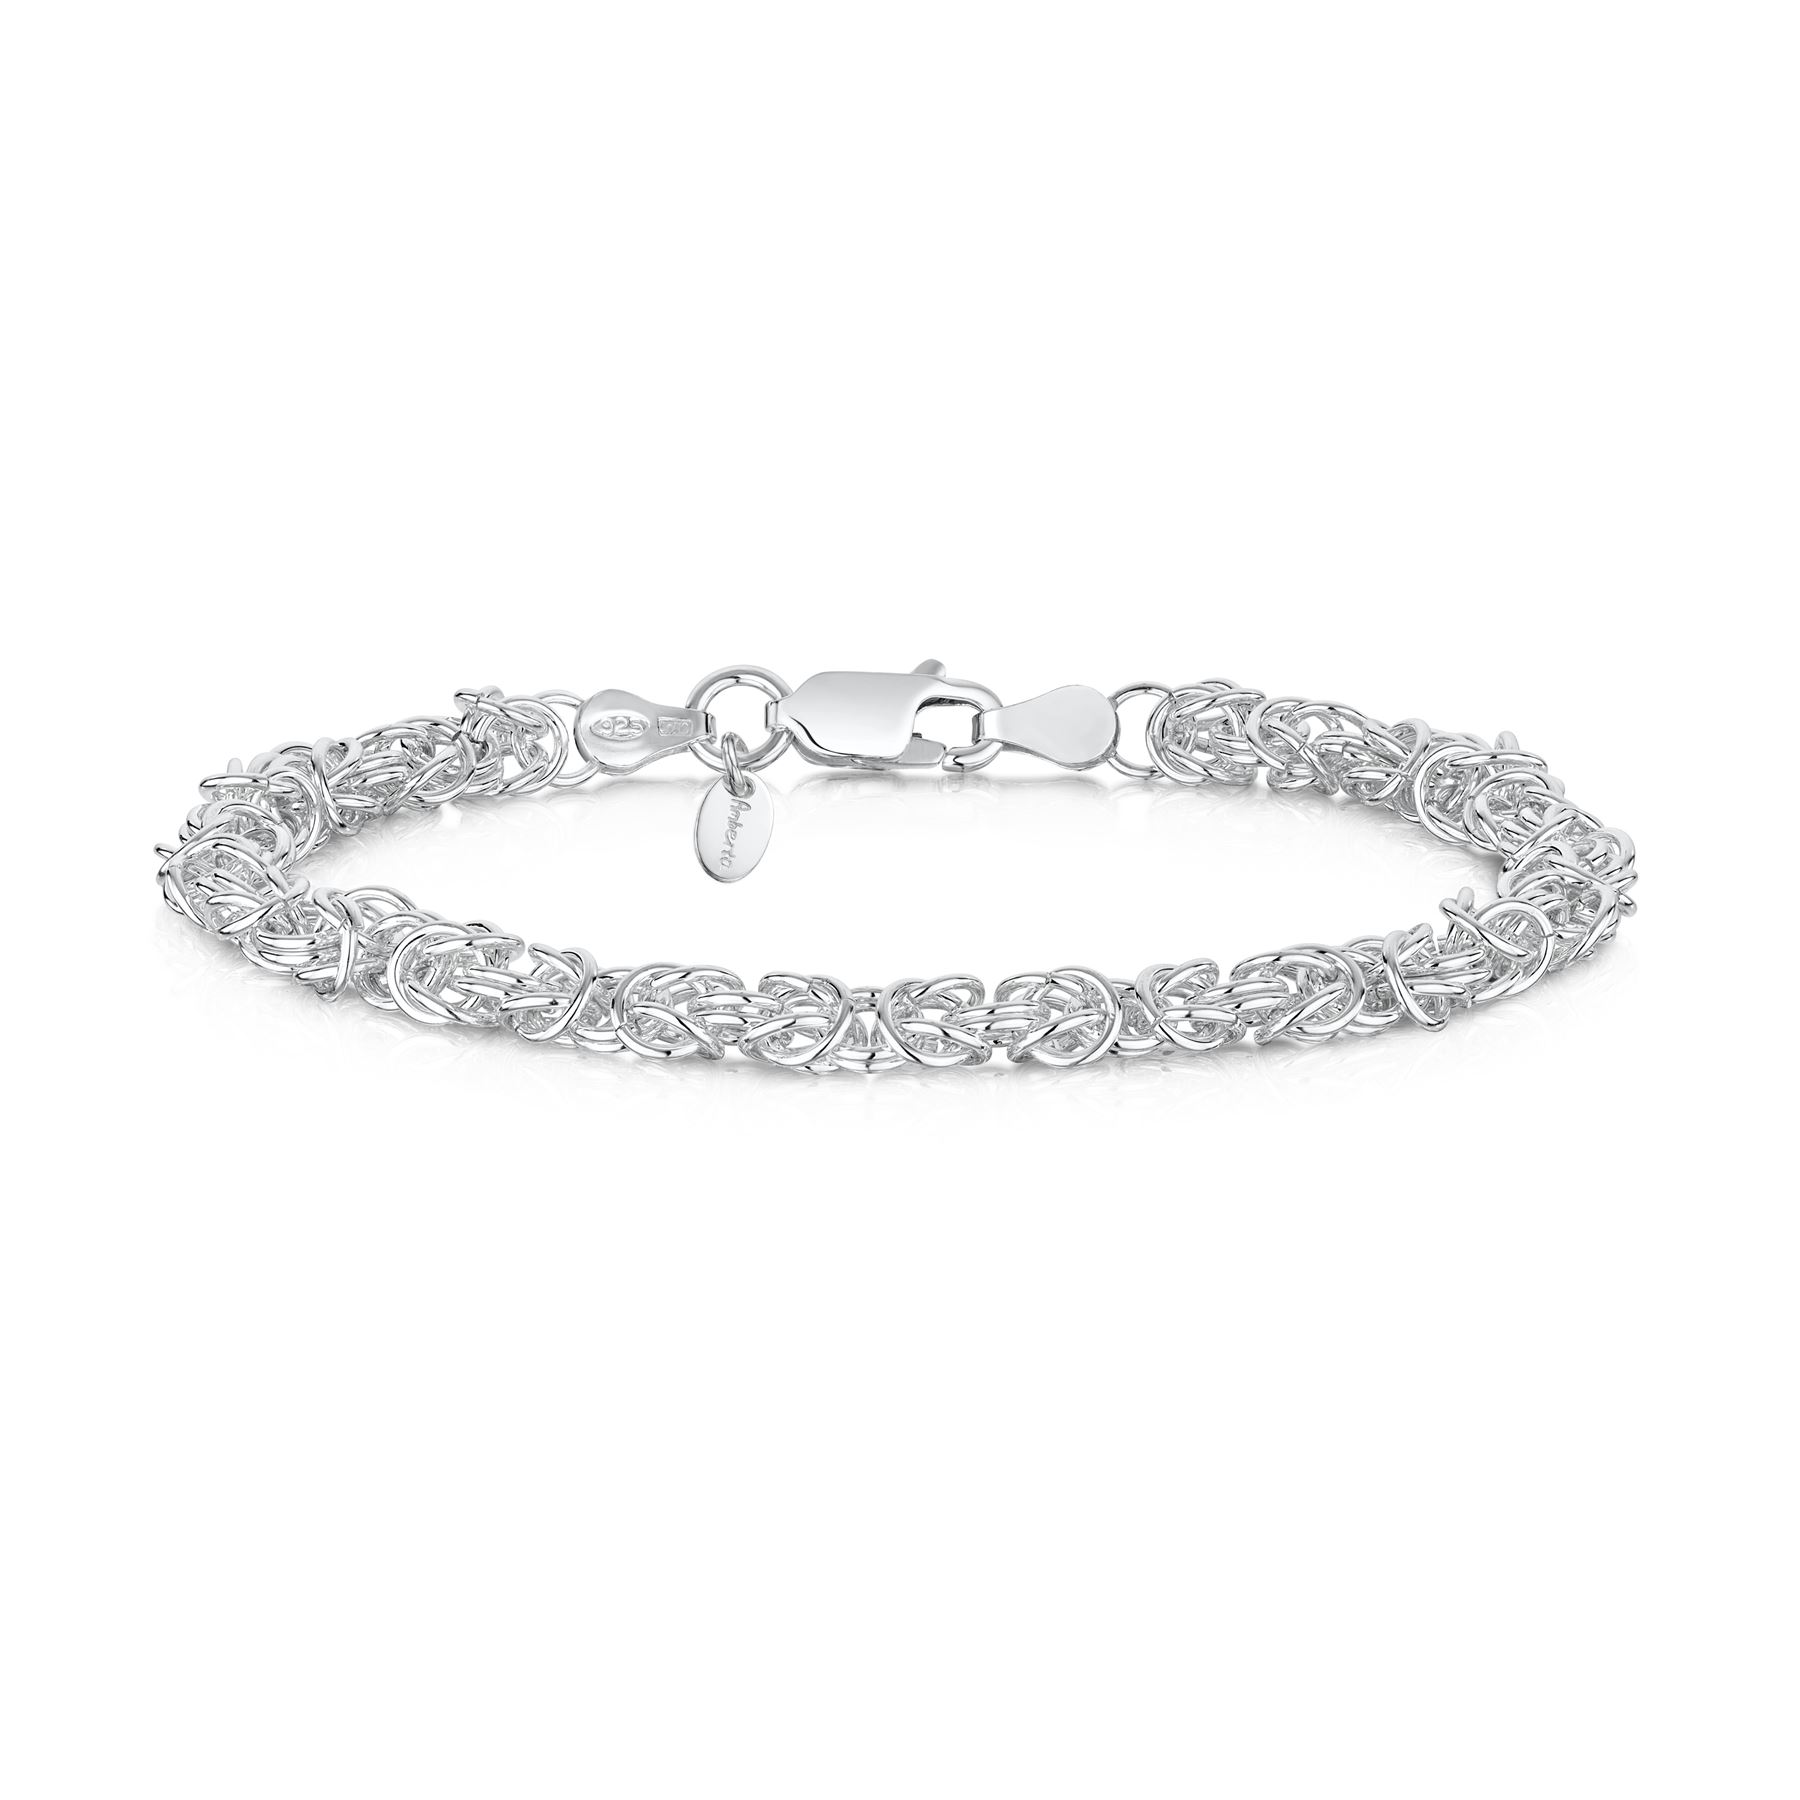 Amberta-Genuine-Real-925-Sterling-Silver-Chain-Bracelet-for-Women-from-Italy miniature 24